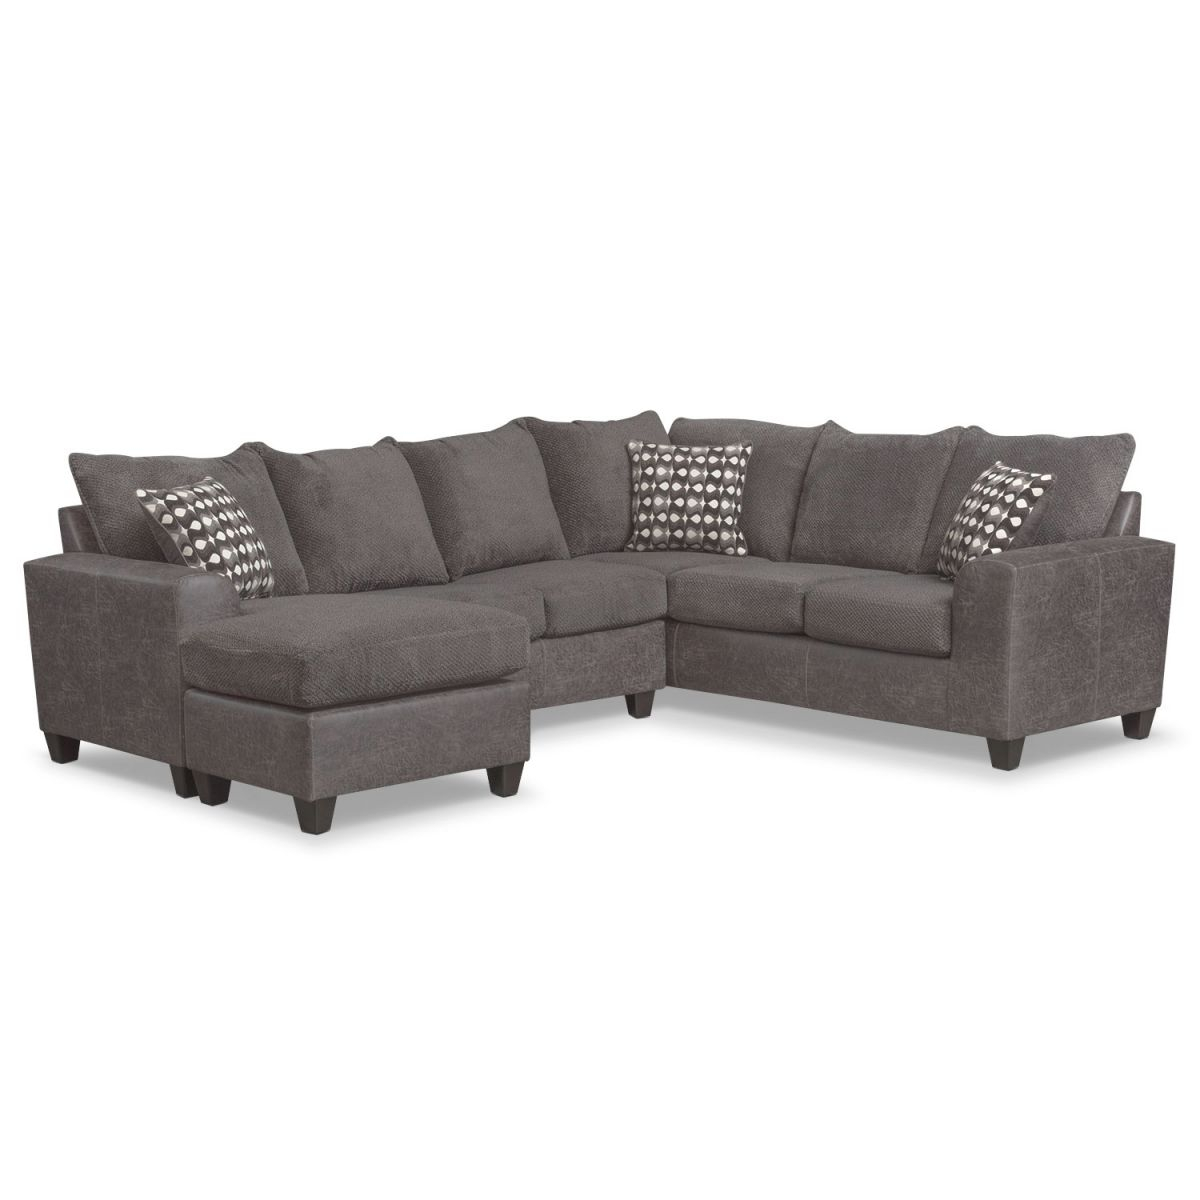 Brando 3-Piece Sectional With Modular Chaise with regard to Beautiful 3 Piece Sectional Sofa